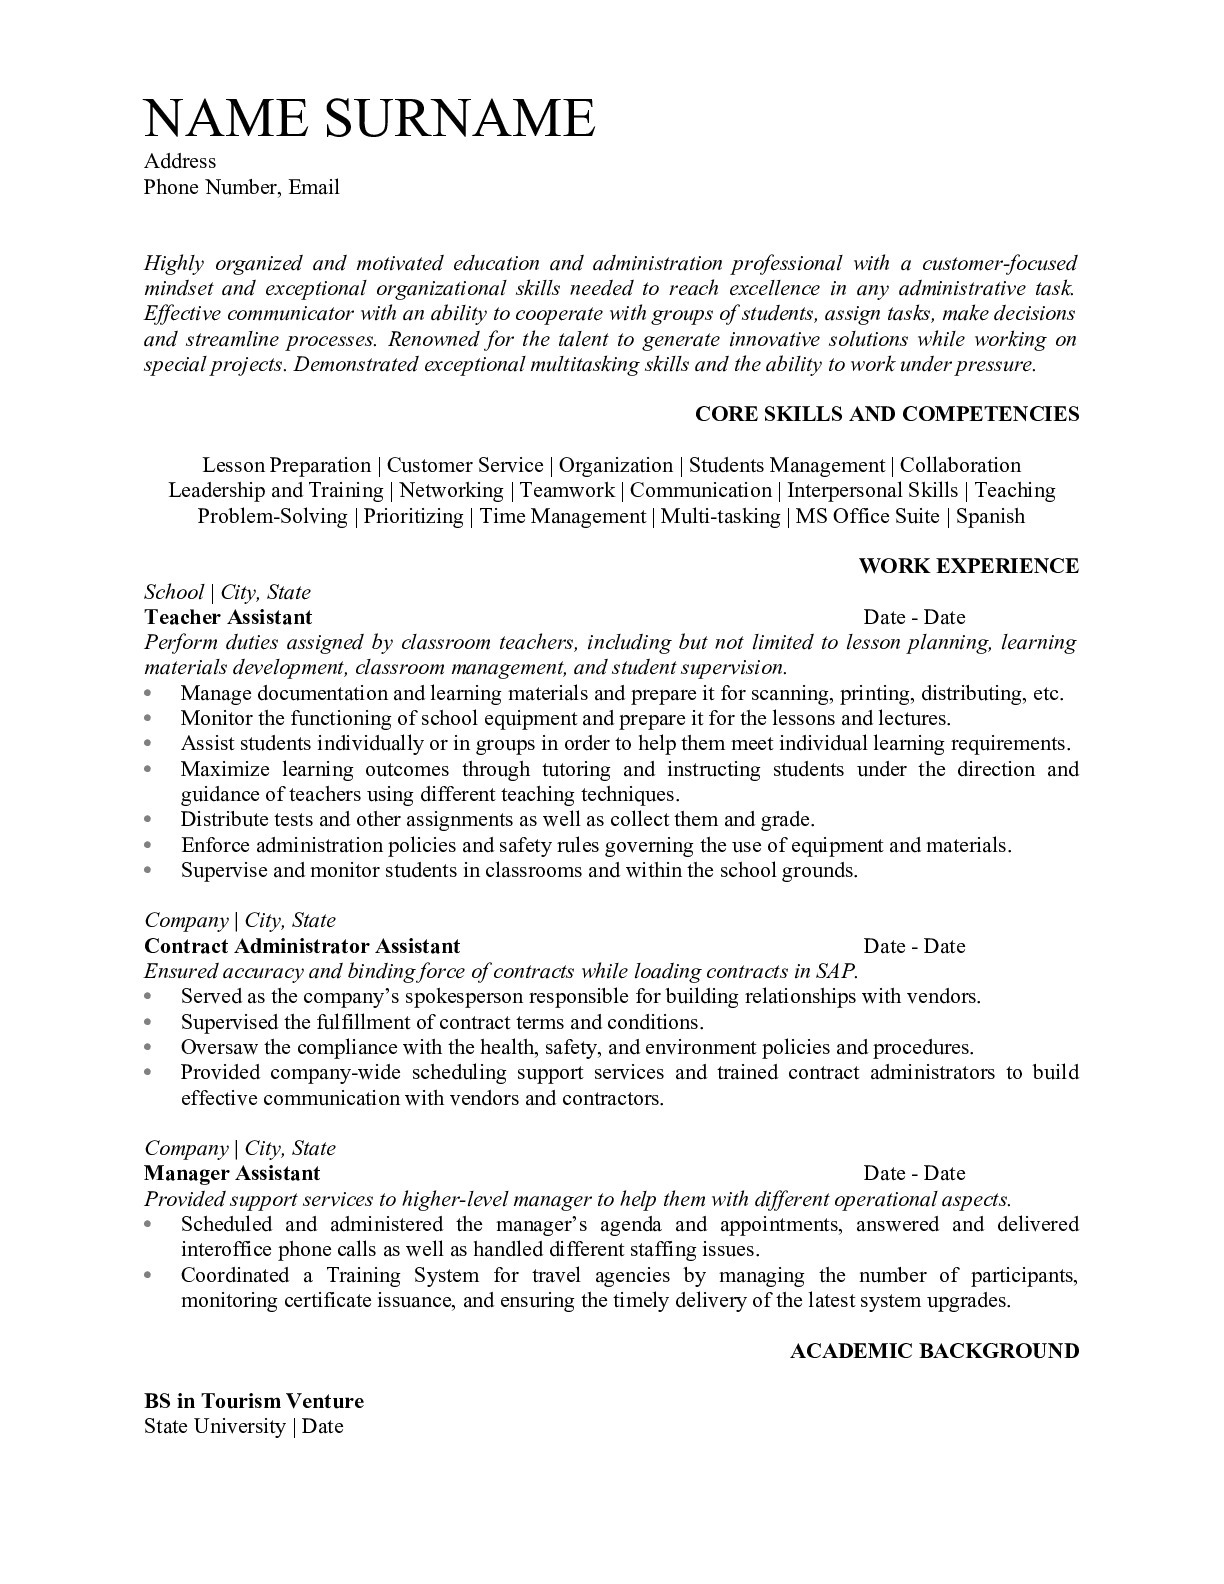 Resume Example for Teacher Assistant